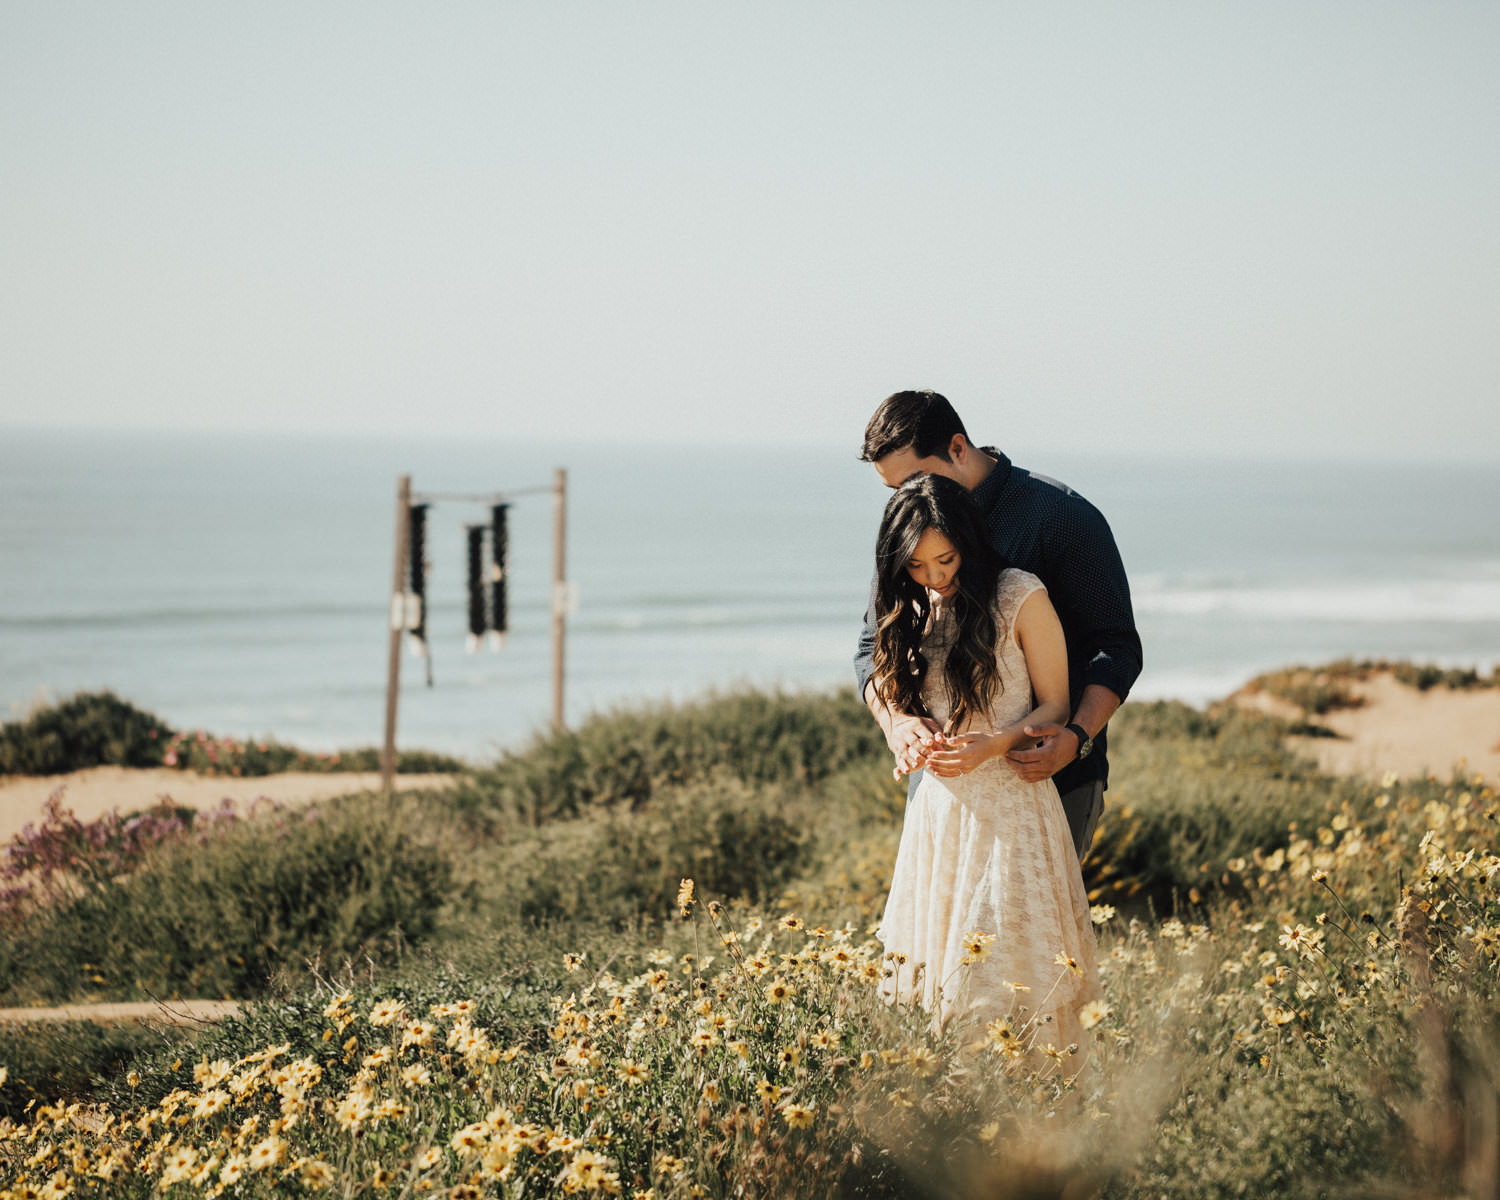 torrey pines engagement session sweet moment